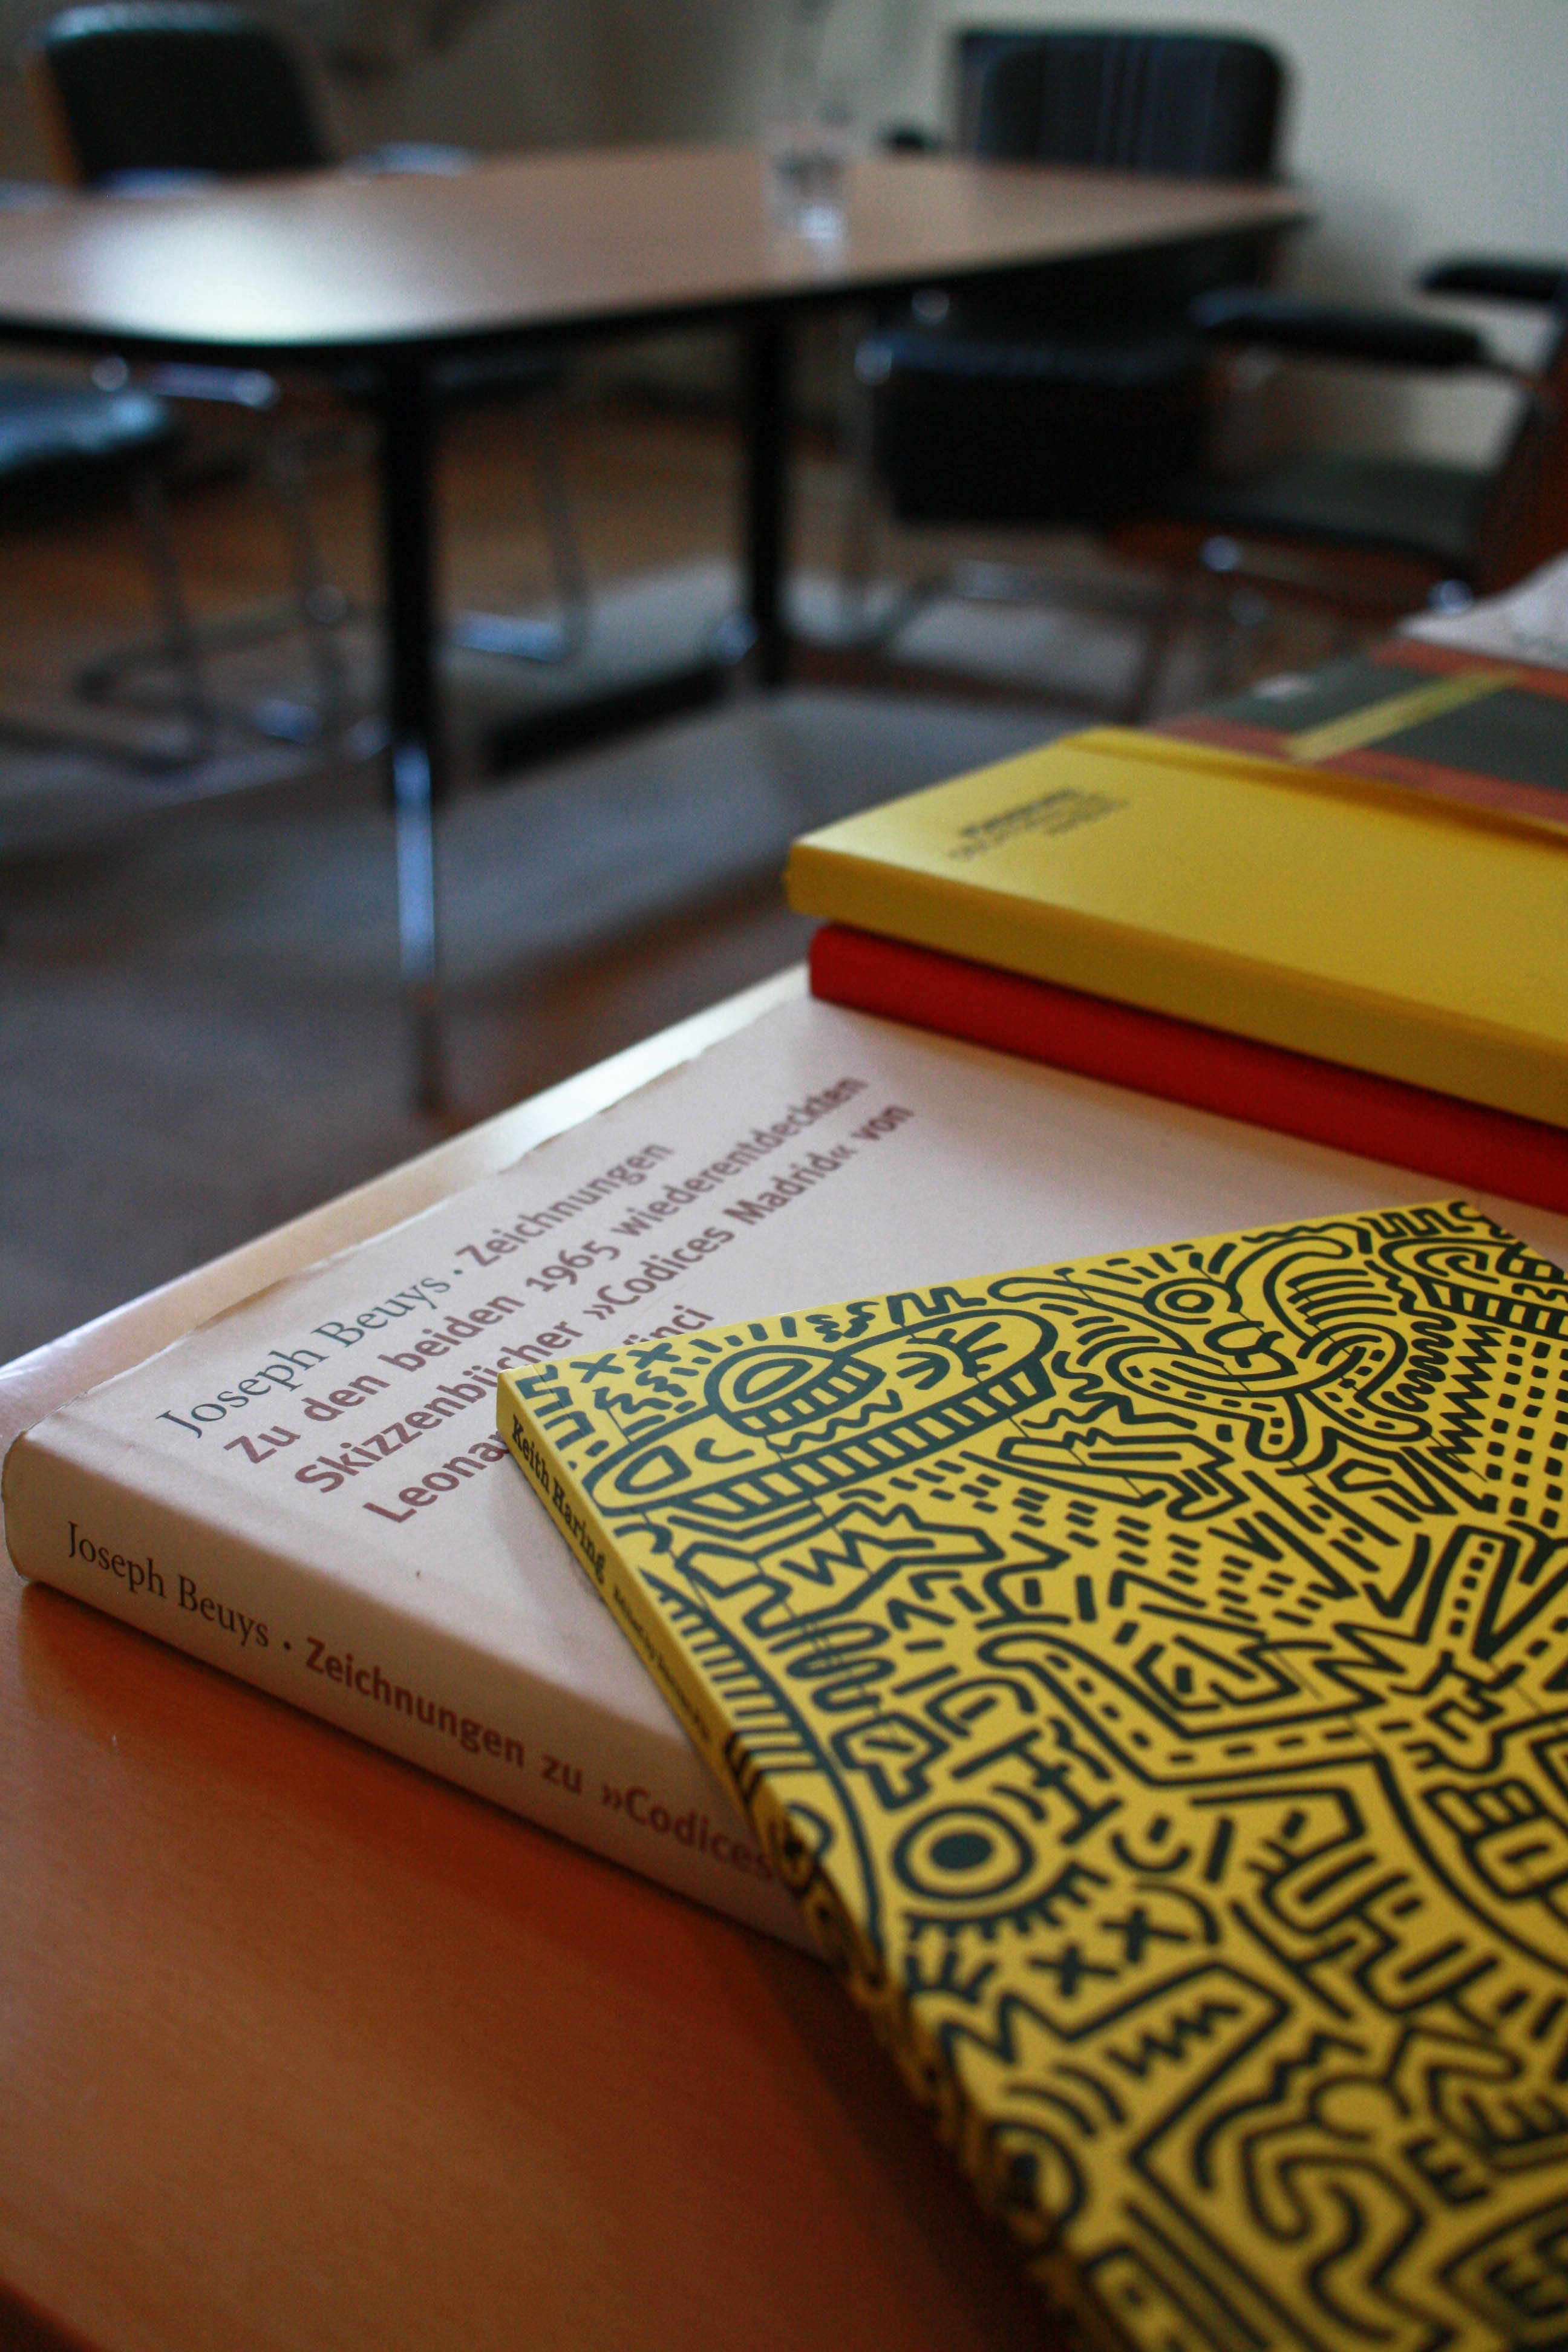 Haring and Beuys Art Books